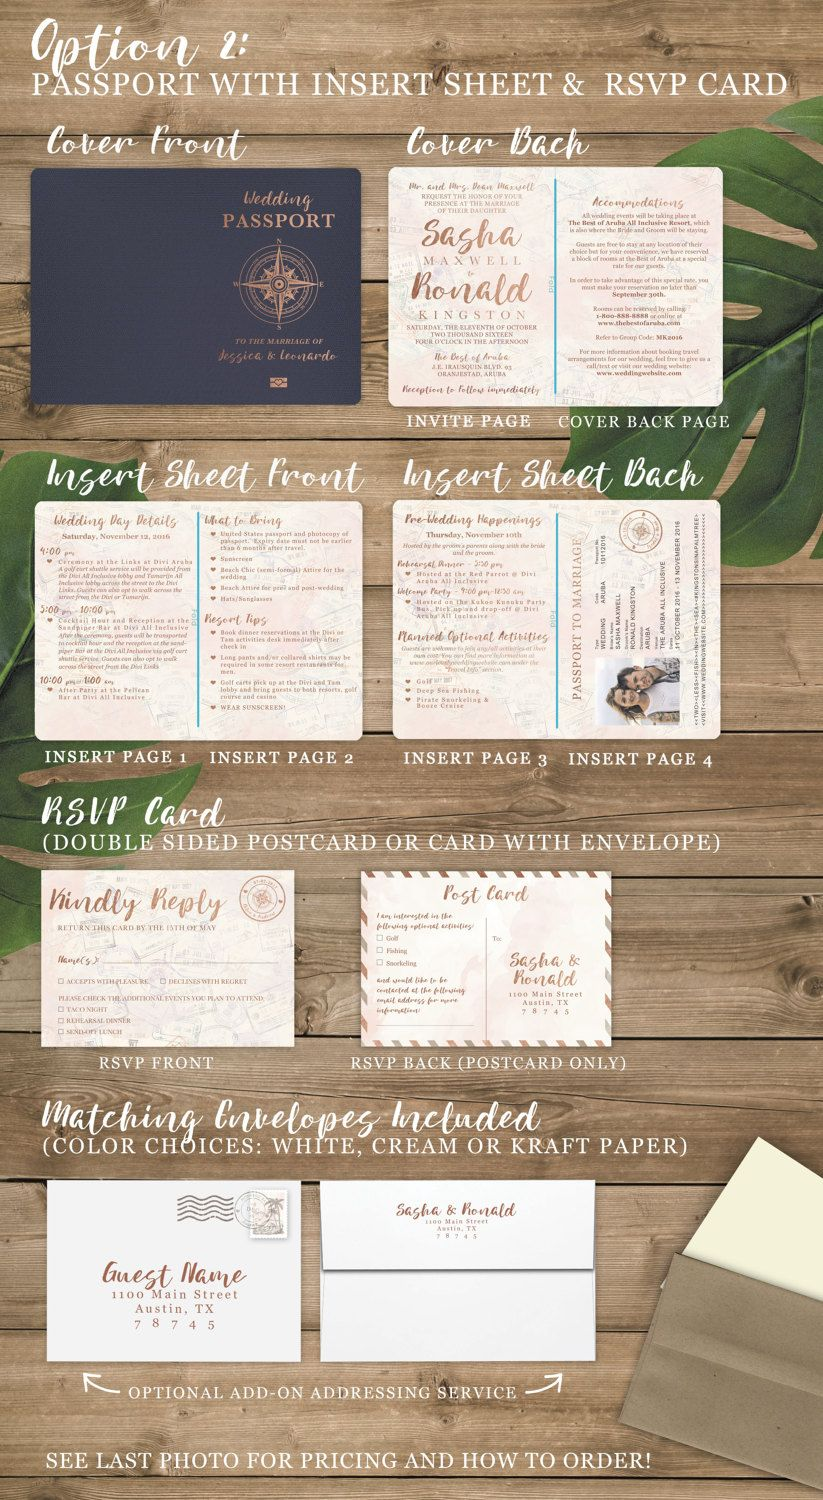 funny personal wedding card matter%0A Destination Wedding Passport Invitation Set in Rose Gold Watercolor  Tropical Design by Luckyladypaper  see details to order   Destination  wedding